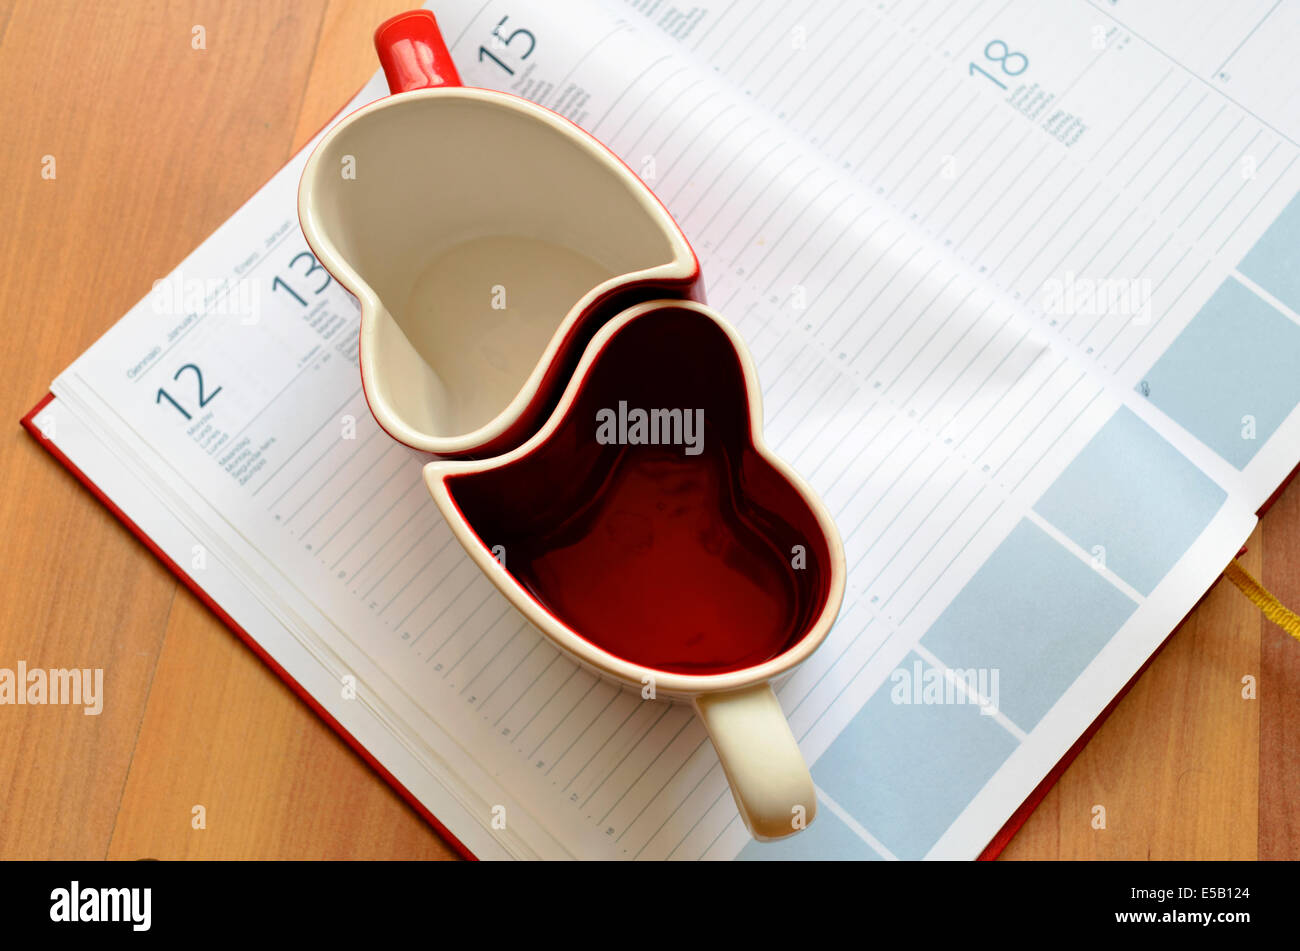 Love Business Plan Glass Concept Stock Photo